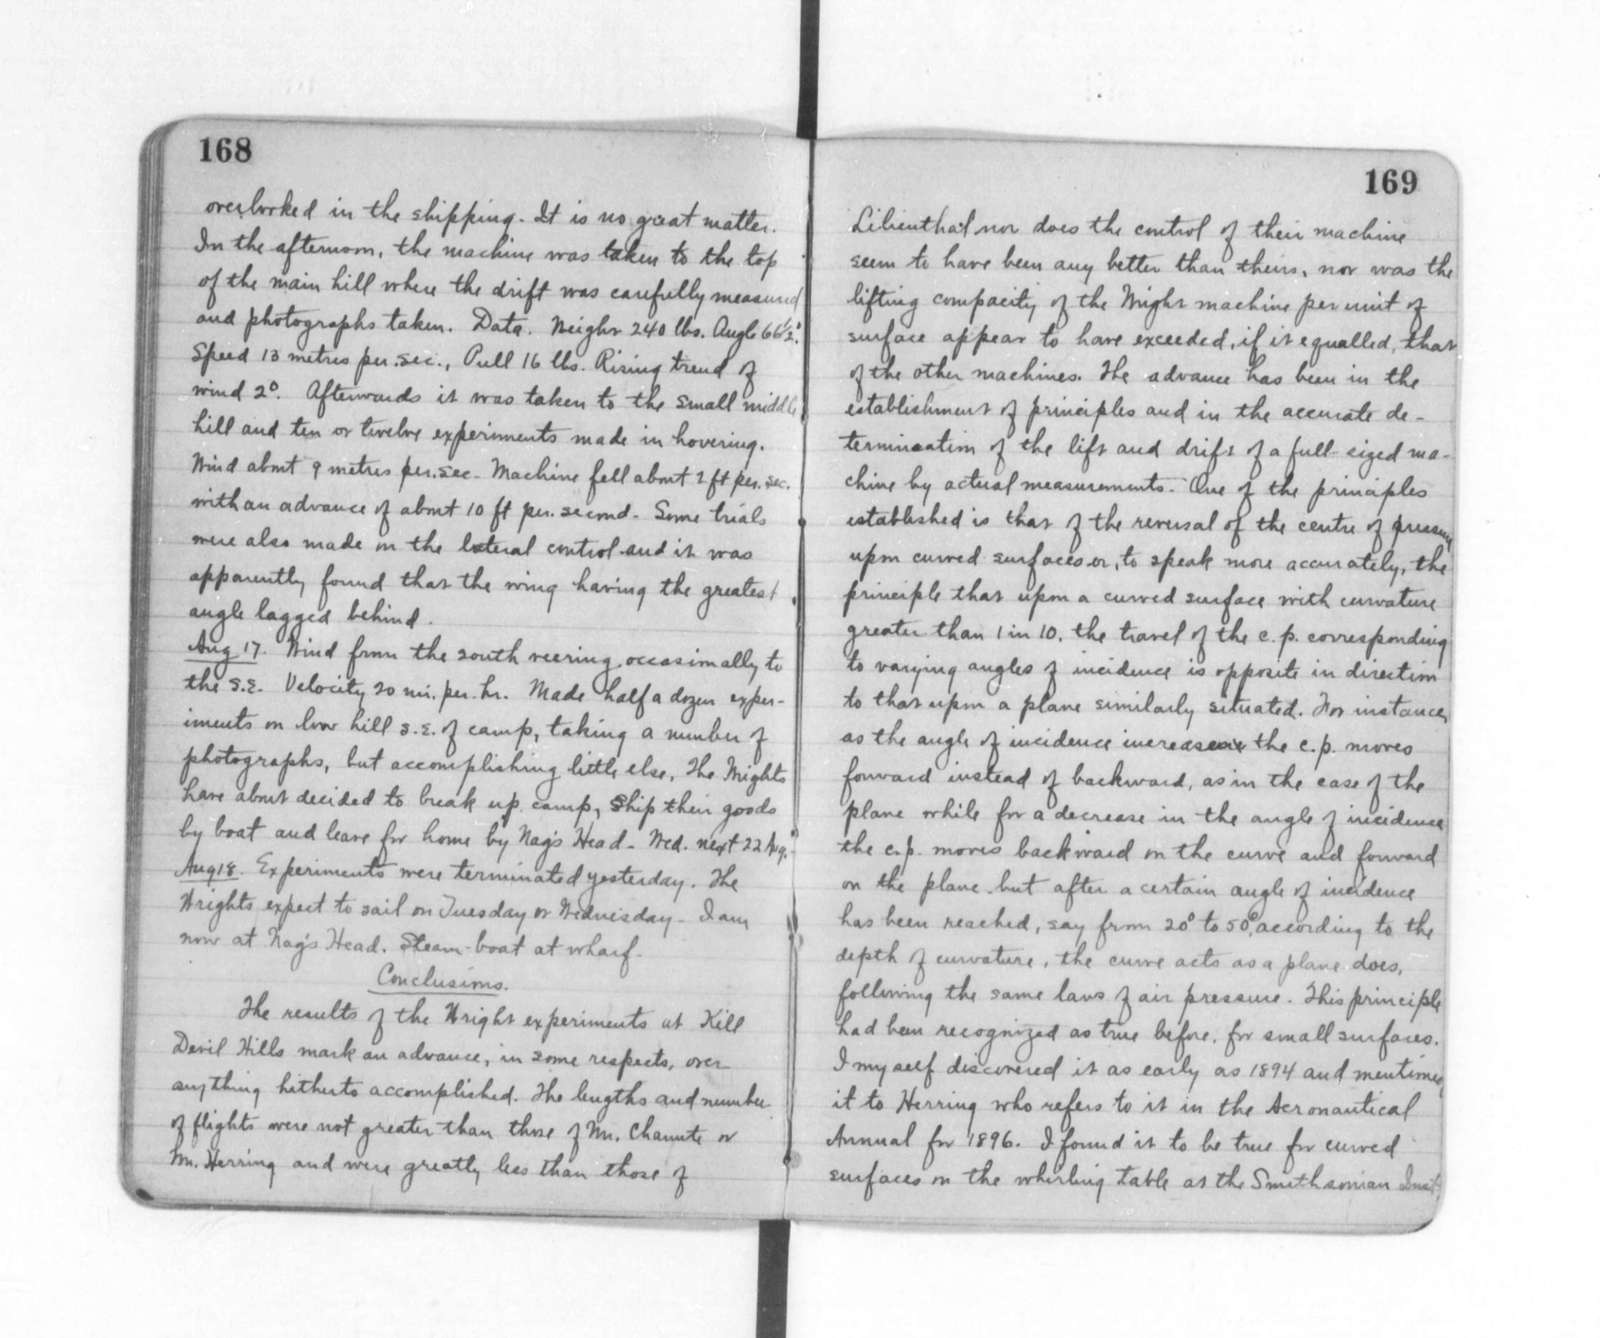 """Diaries and Notebooks:  1901, """"Huffaker's Diary,"""" kept for Orville Wright"""